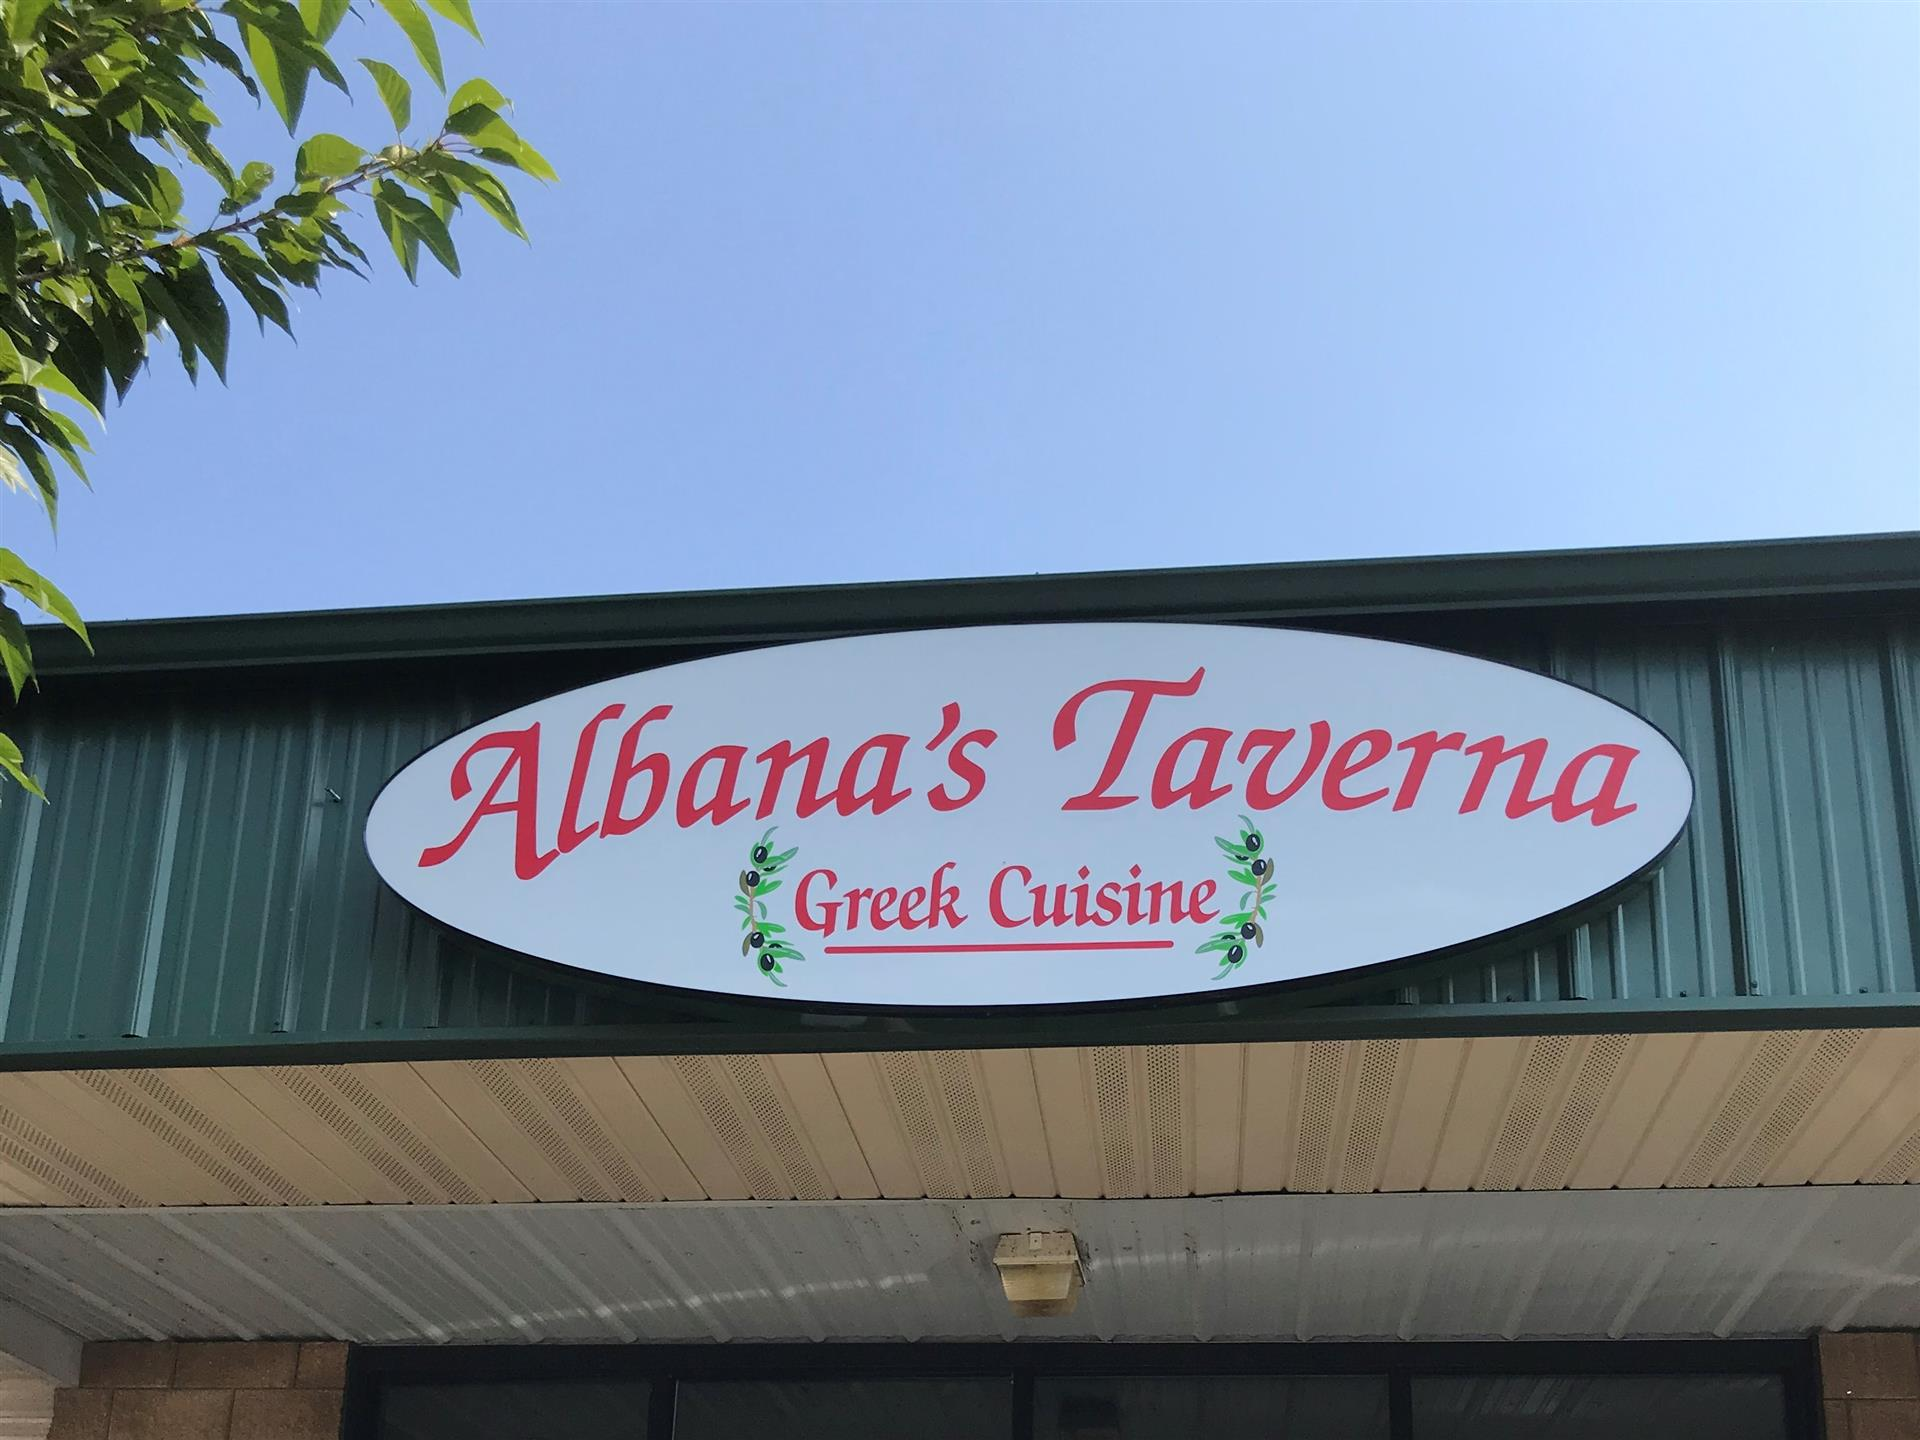 outside signage to albana's taverna greek cuisine